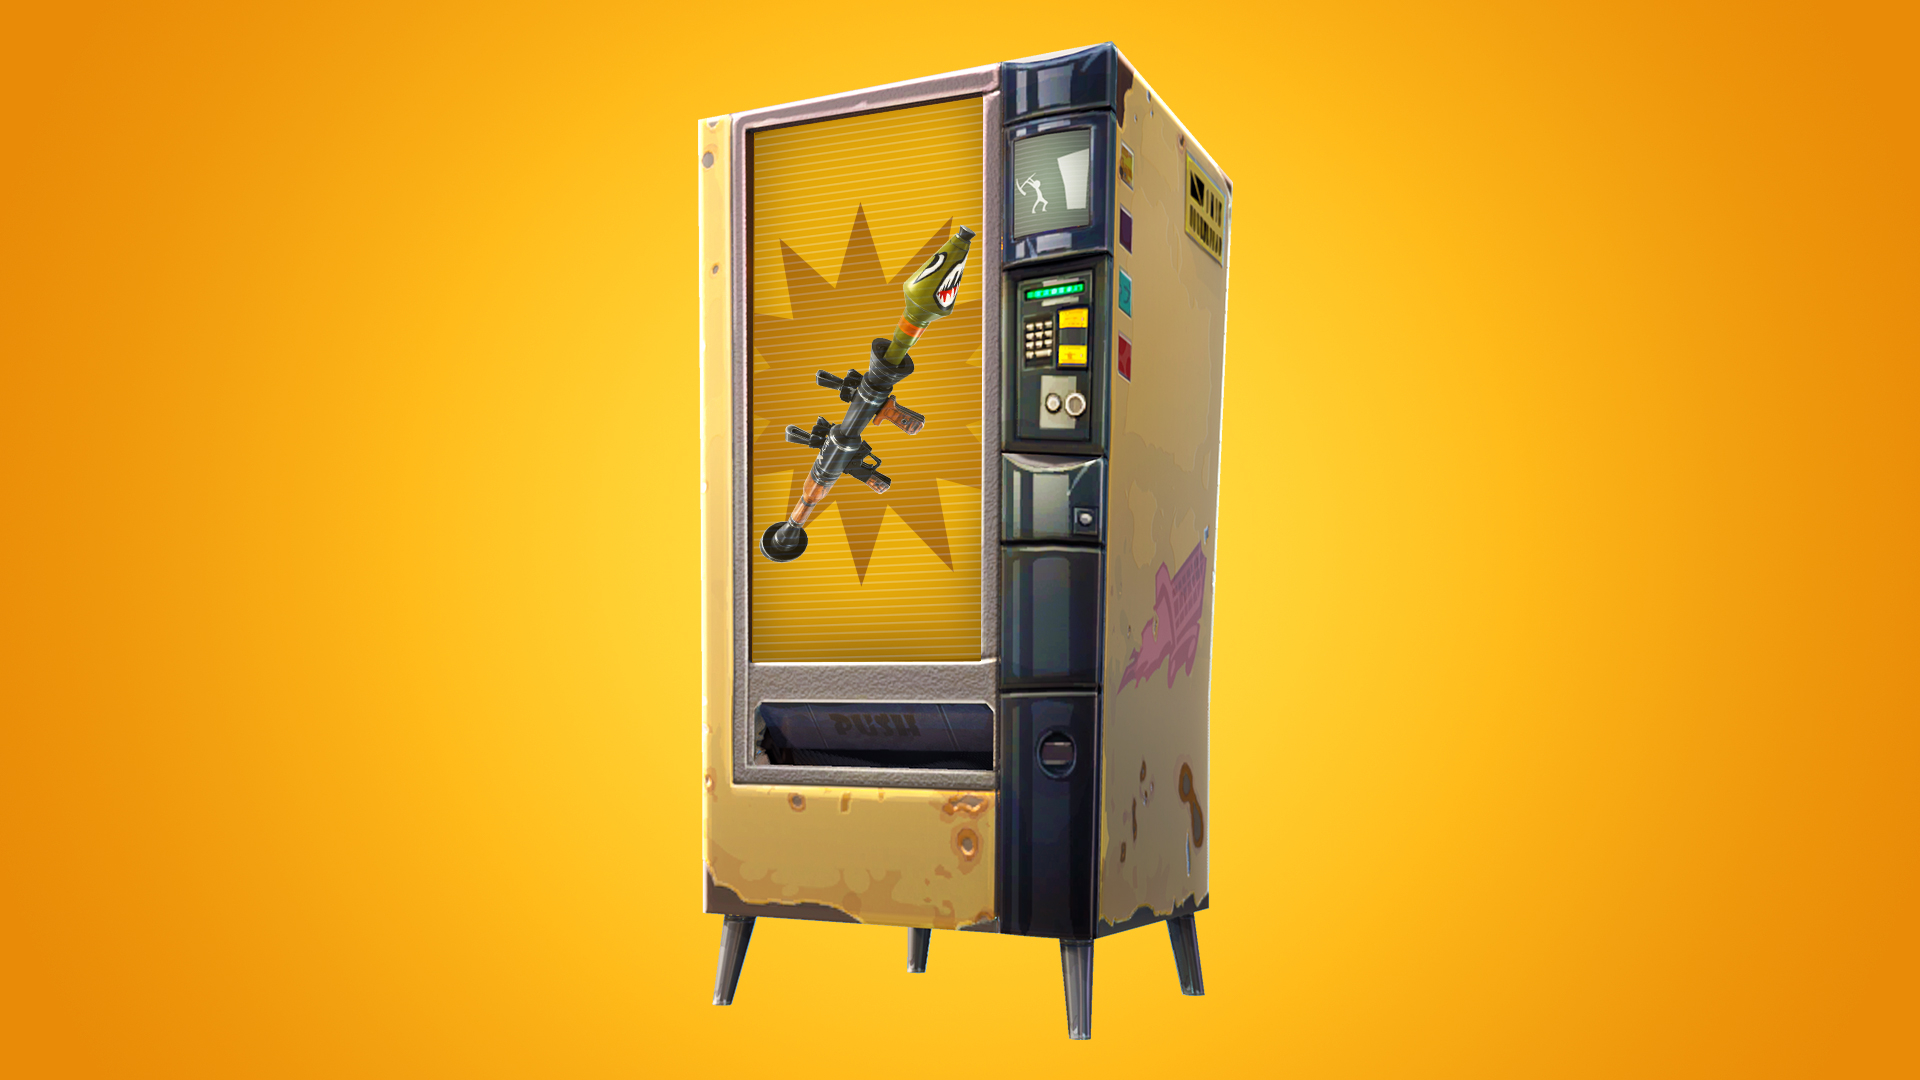 Photo of Fortnite players may claim multiple items from the Vending Machines in 8.10 due to a bug